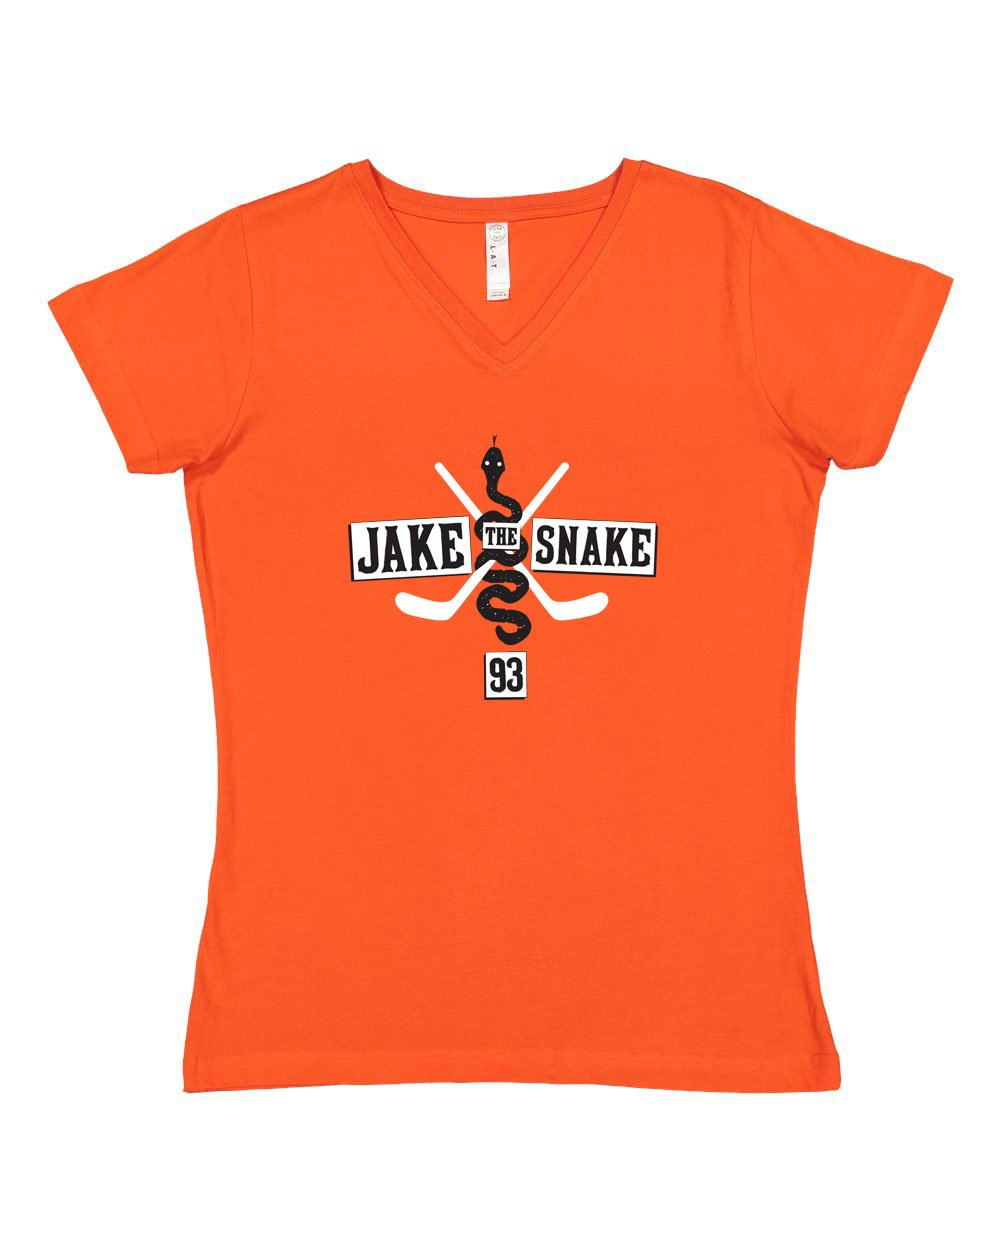 Jake The Snake LADIES Junior Fit V-Neck